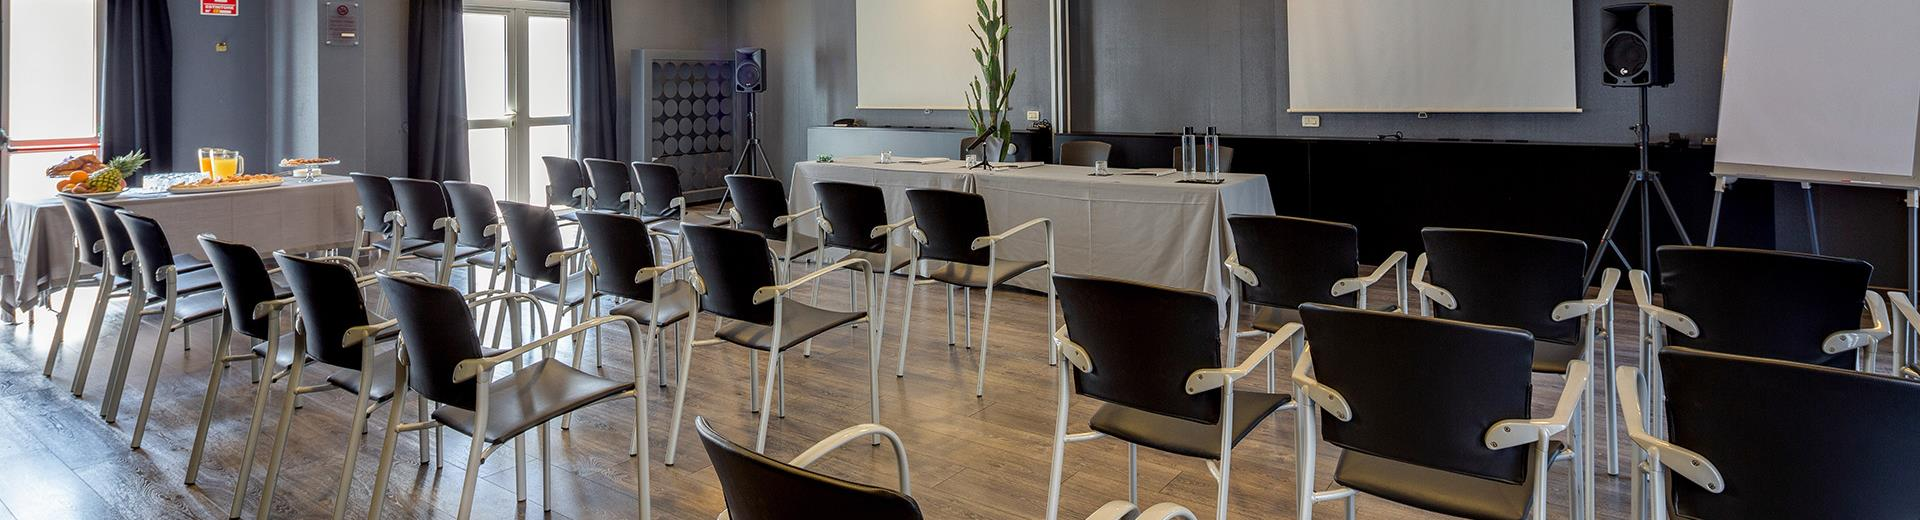 Organize your meeting in Vicenza in the modern rooms of BW Hotel Aries